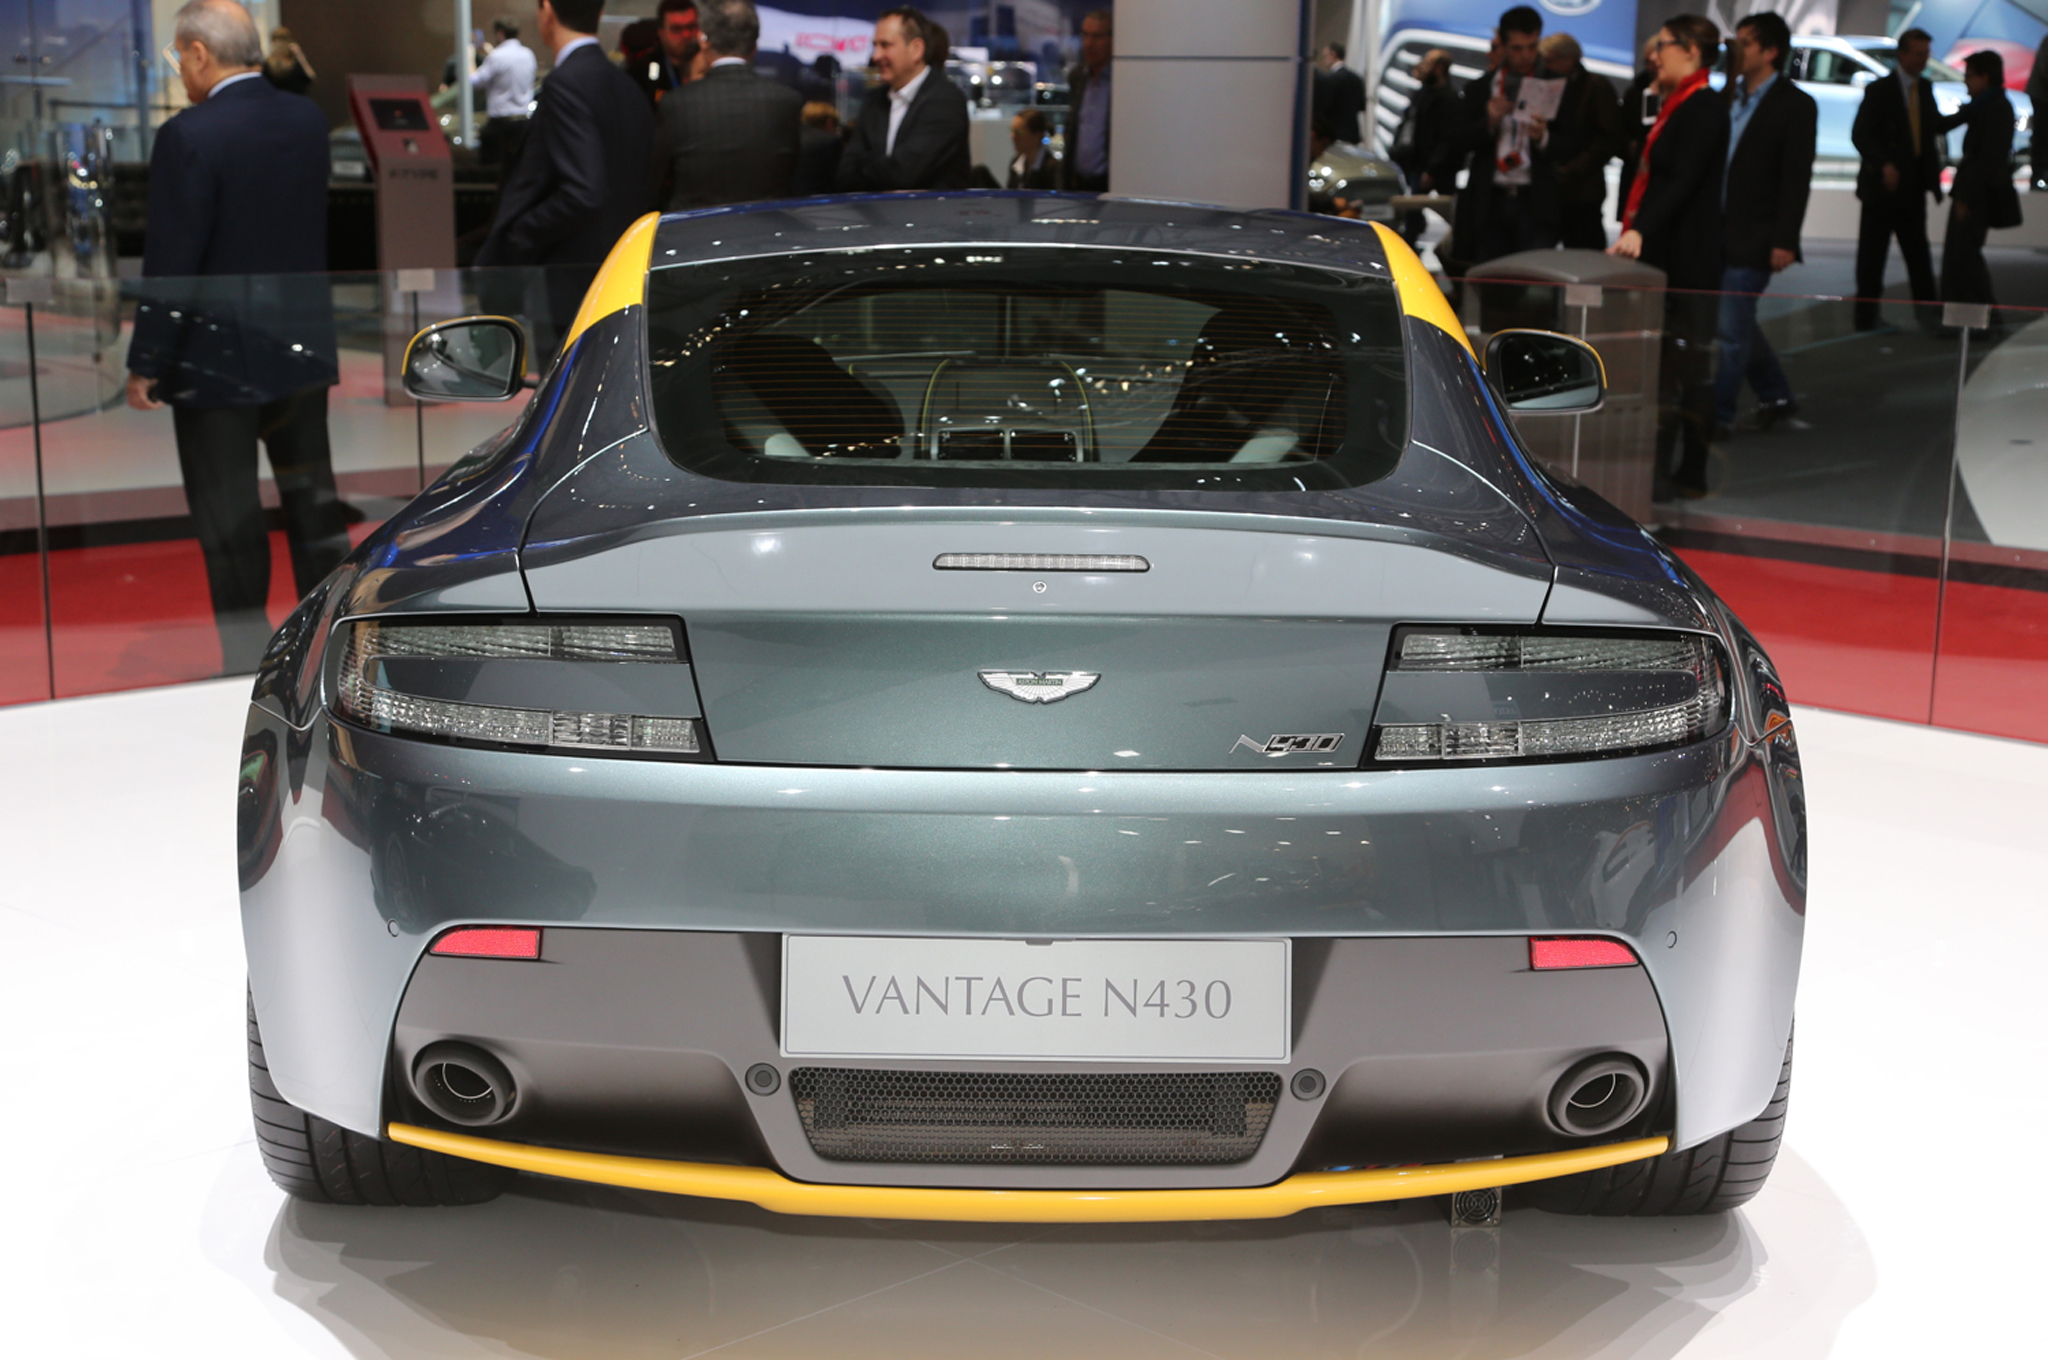 2015 Aston Martin V8 Vantage Gt Rear Design (Photo 4 of 7)